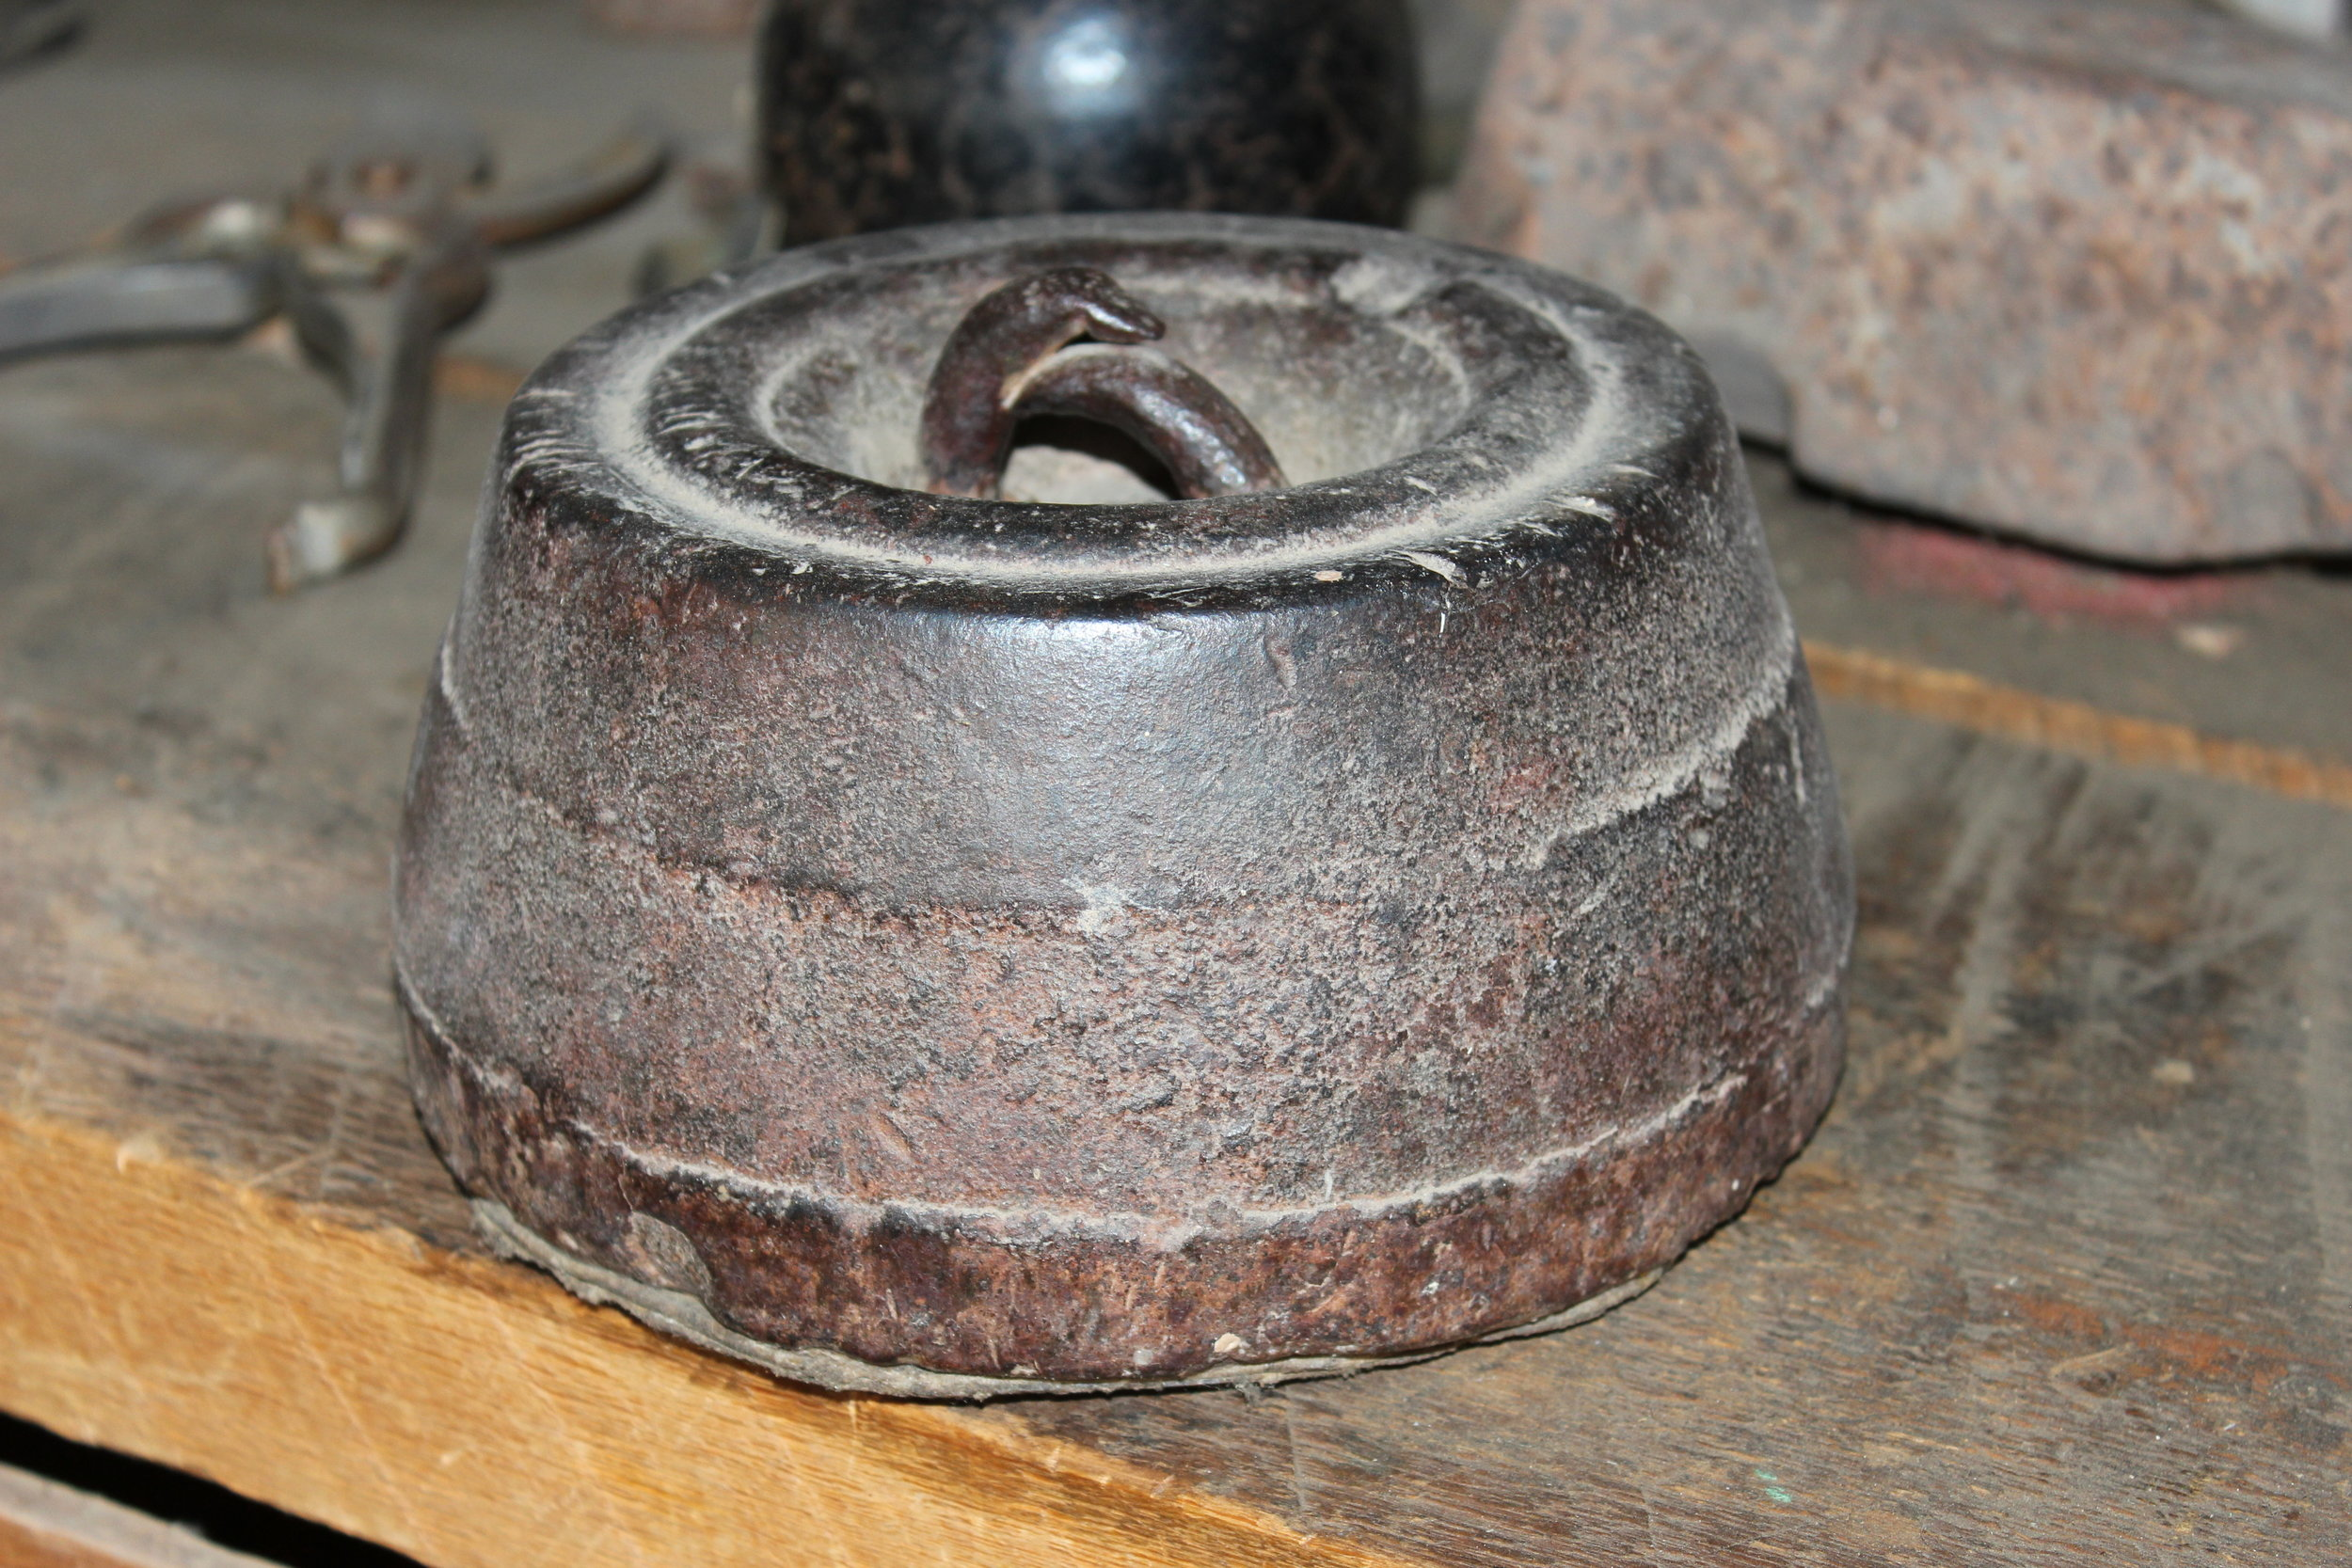 This heavy weight was used to tie a horse in place.